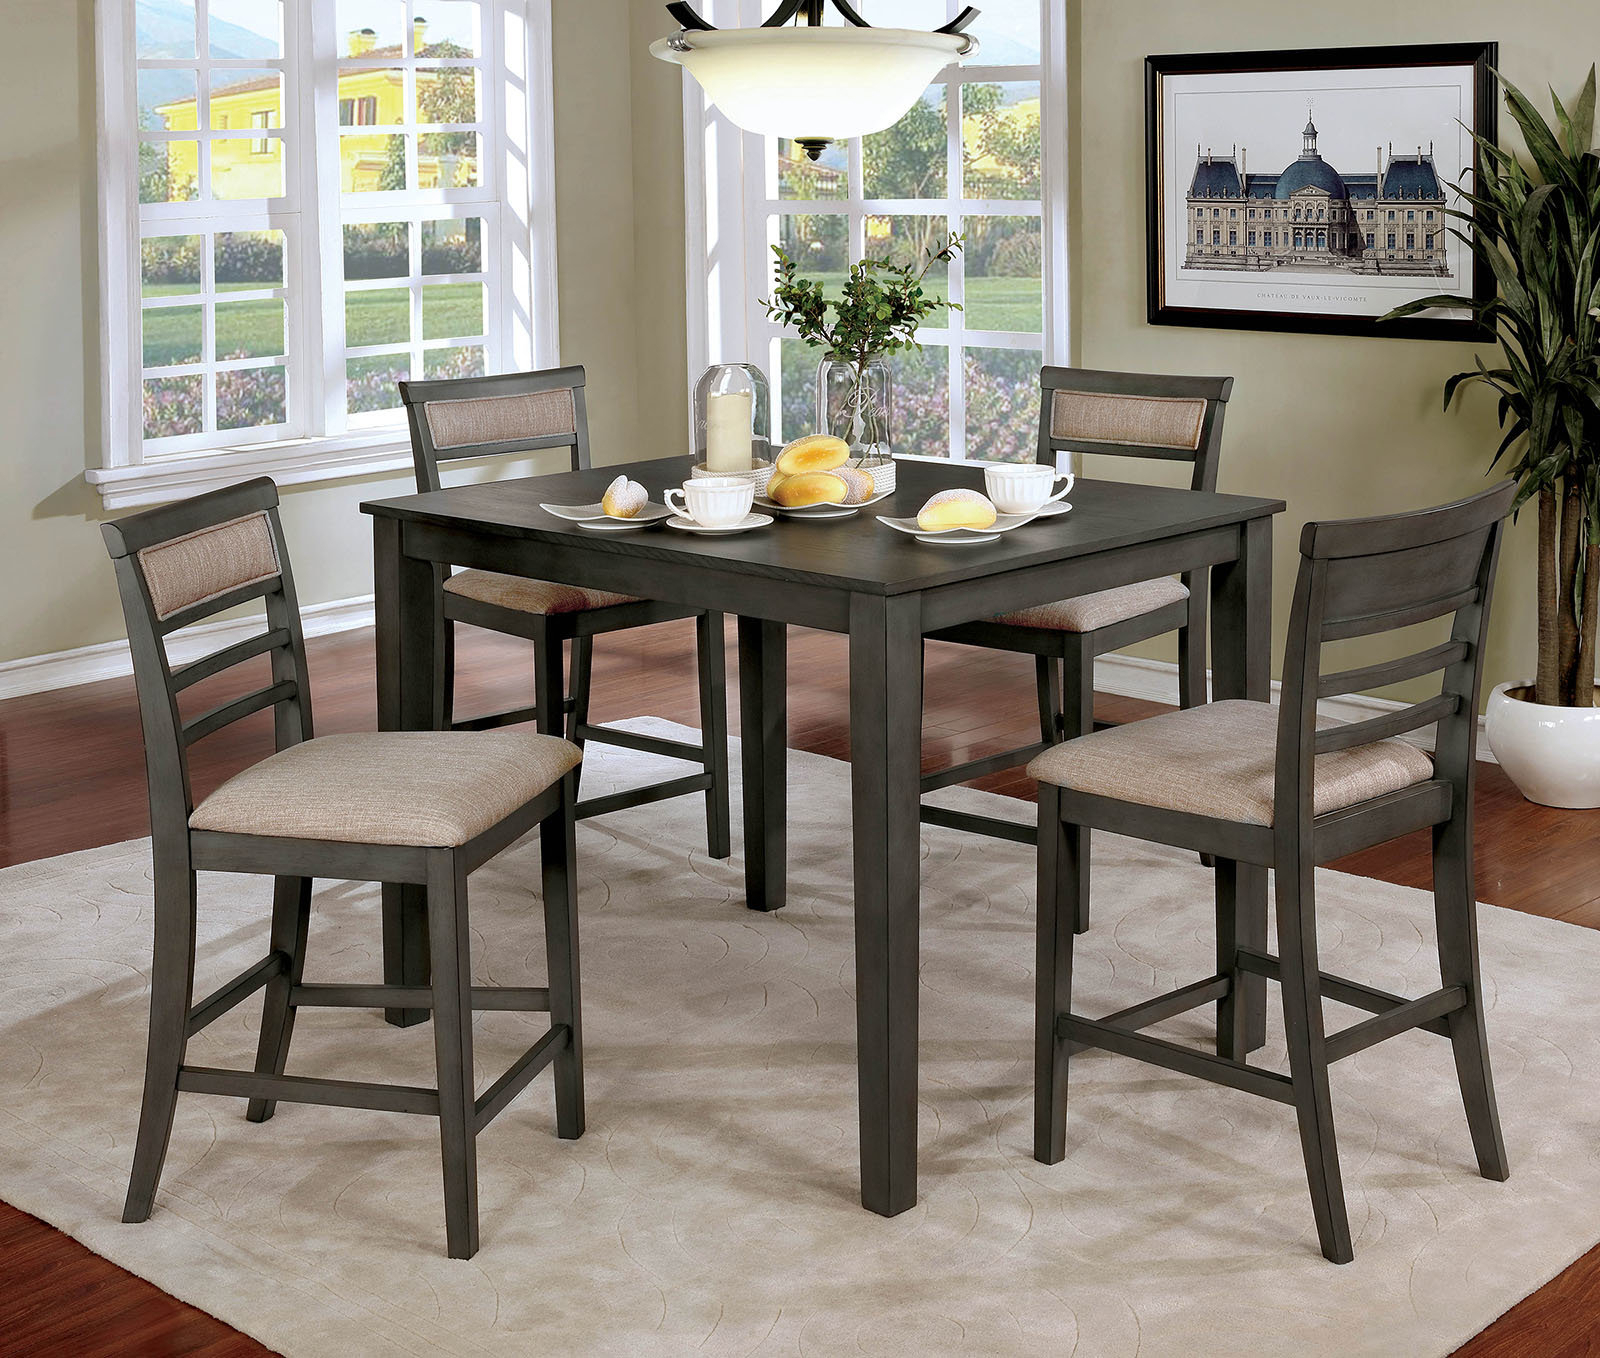 Popular Photo of Hanska Wooden 5 Piece Counter Height Dining Table Sets (Set Of 5)